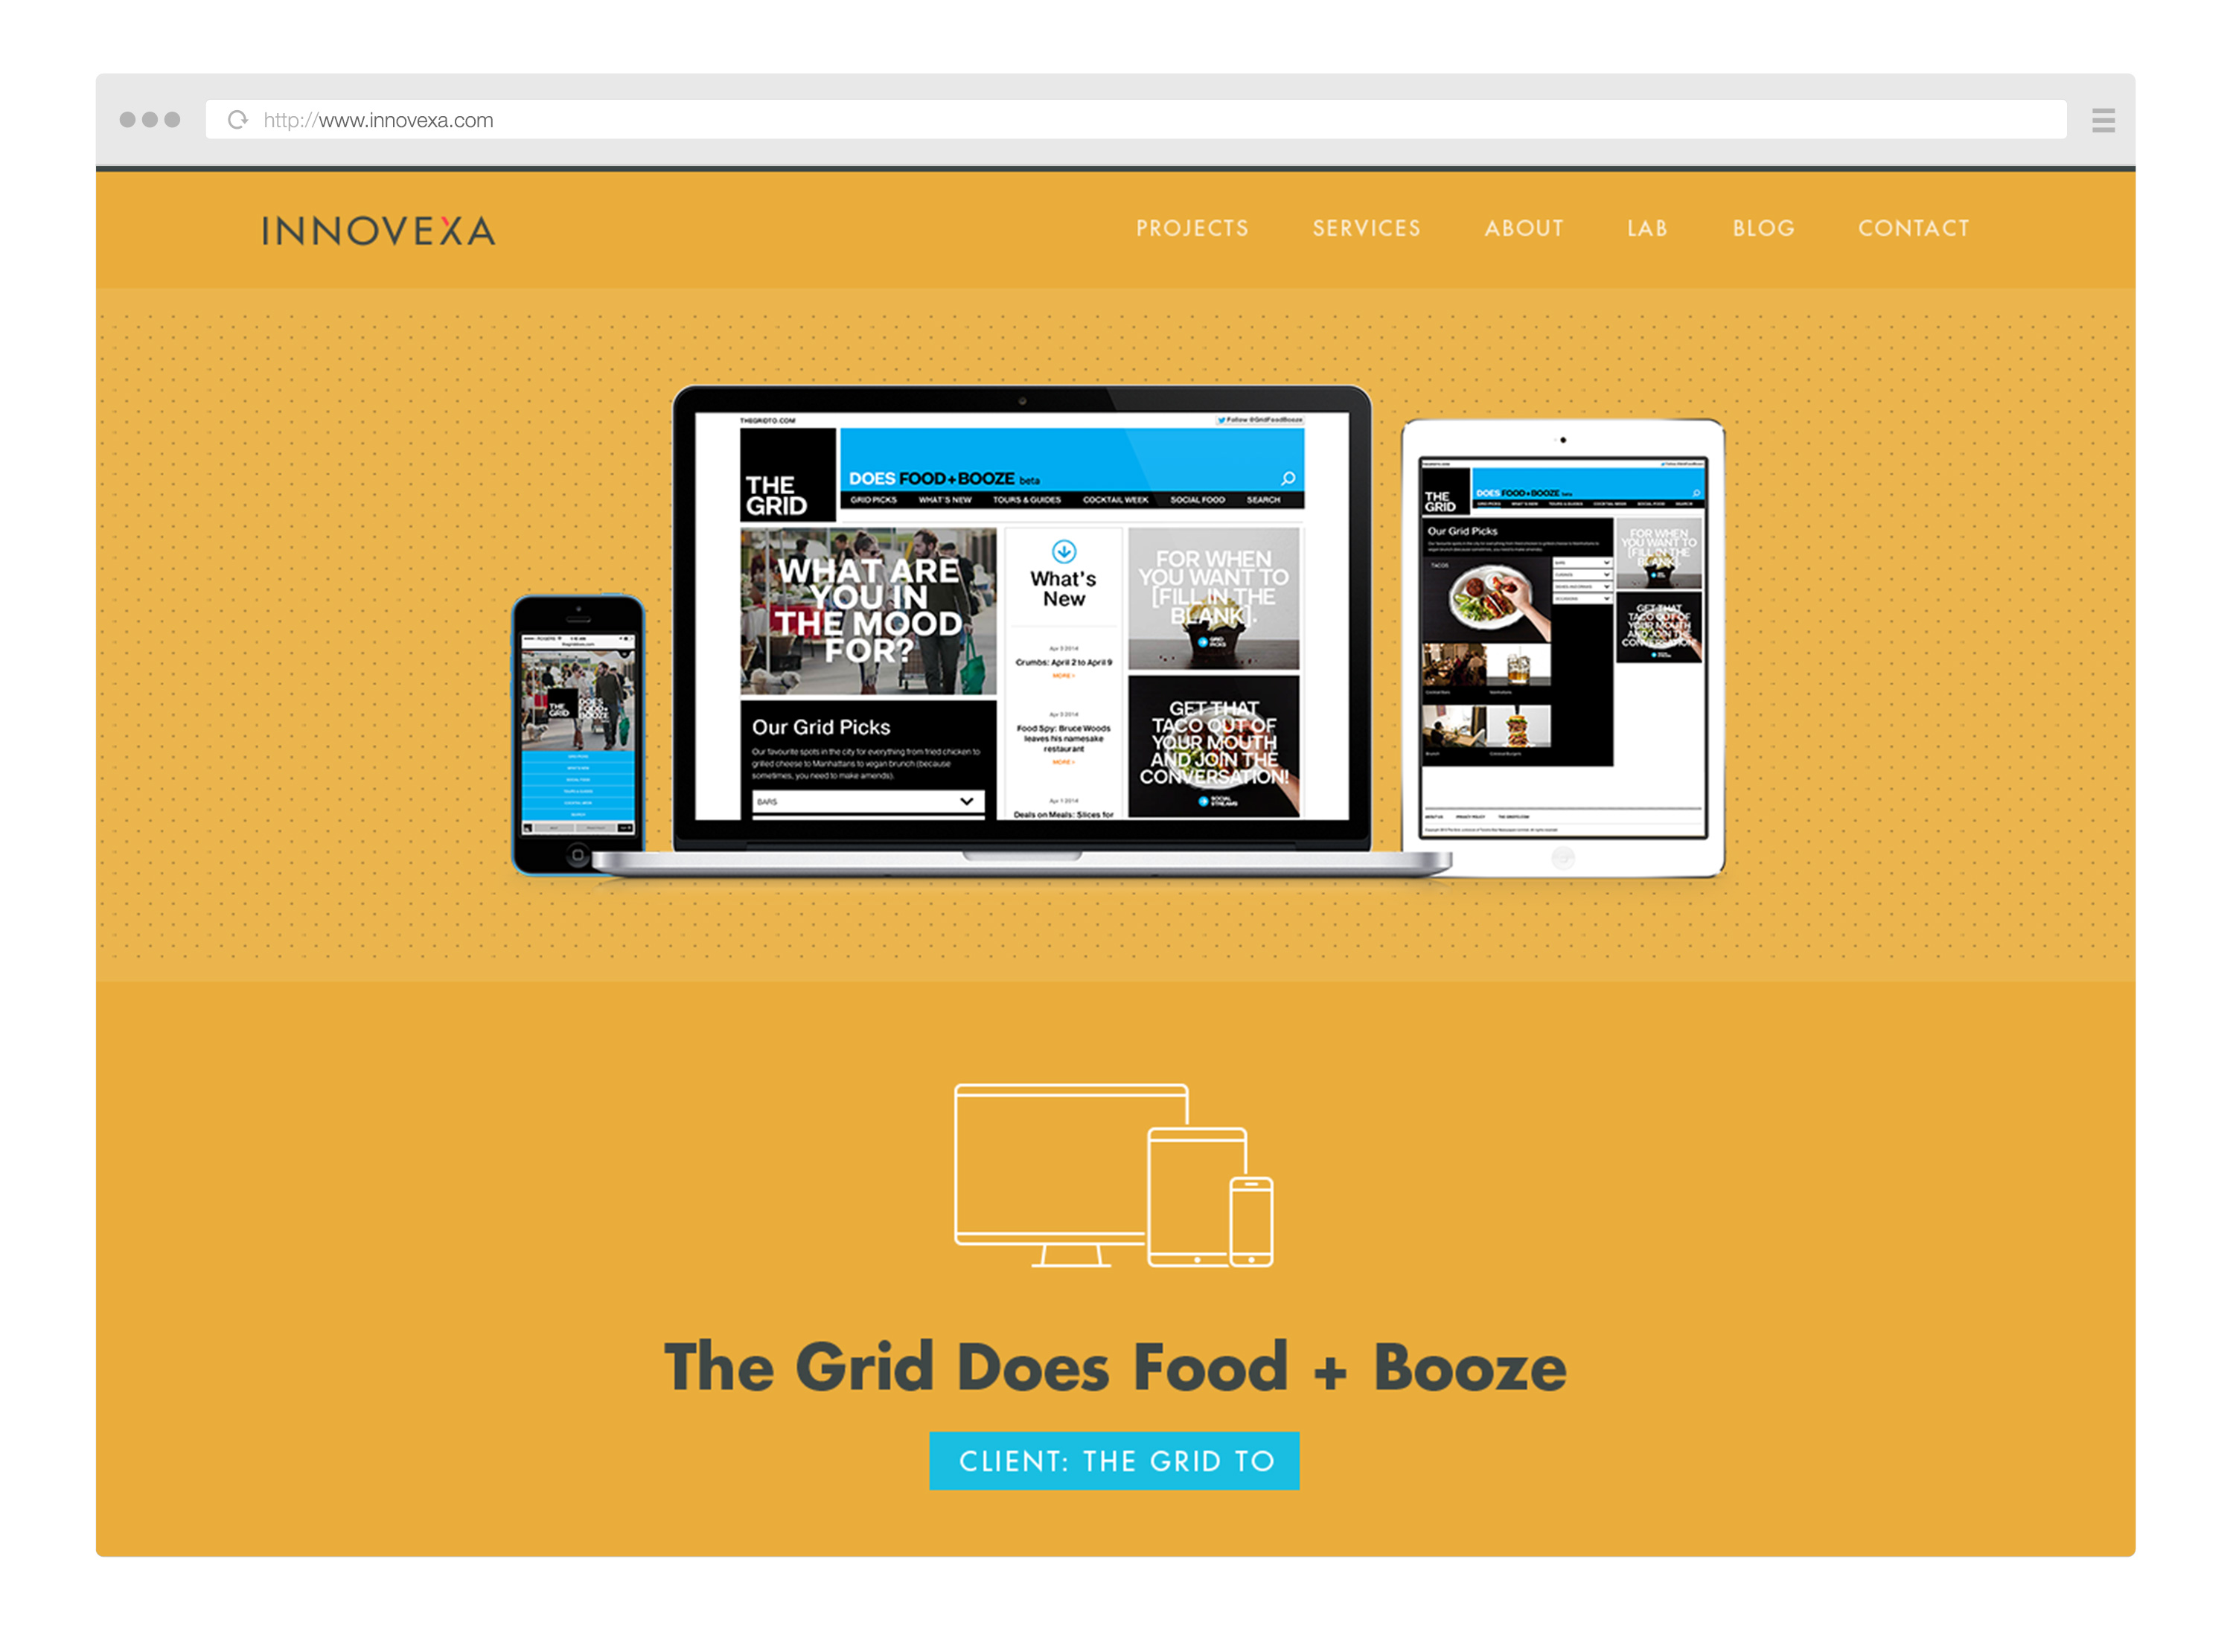 Innovexa_website_Browser_window_v01_Project01_3000px